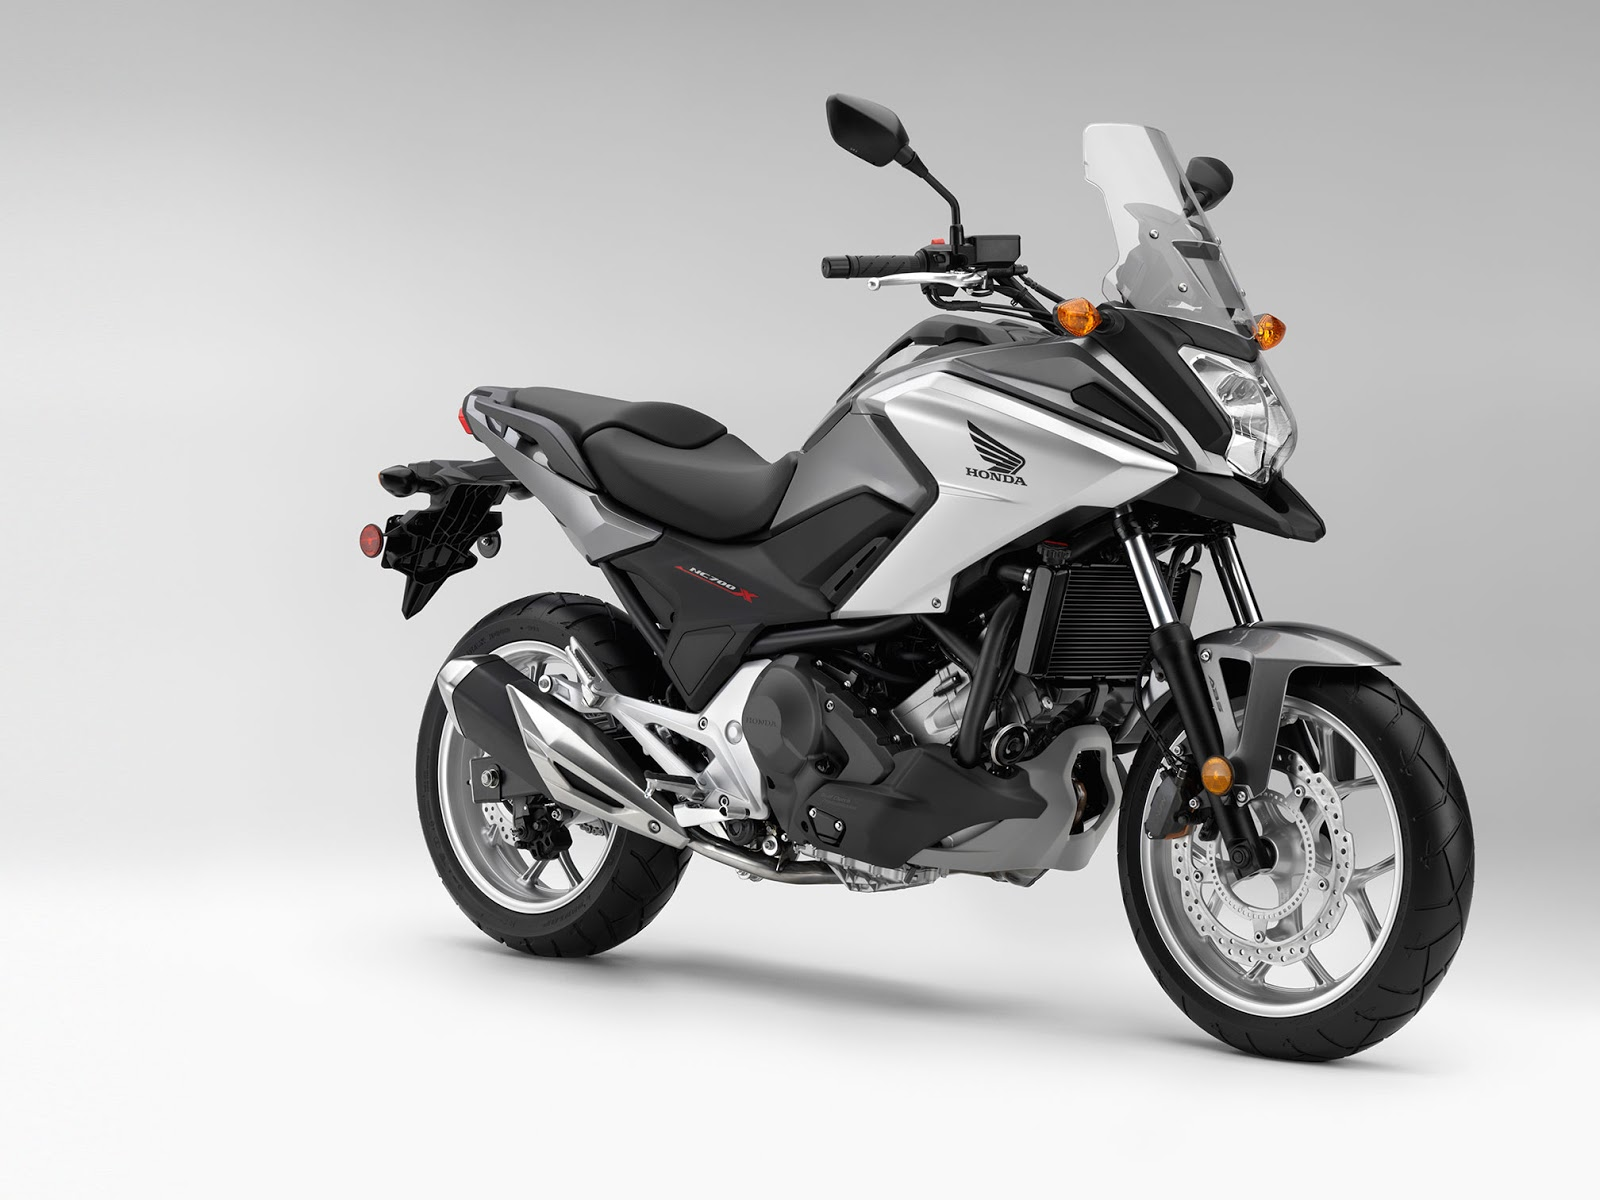 2016 new honda nc750x review a style to match real riders. Black Bedroom Furniture Sets. Home Design Ideas